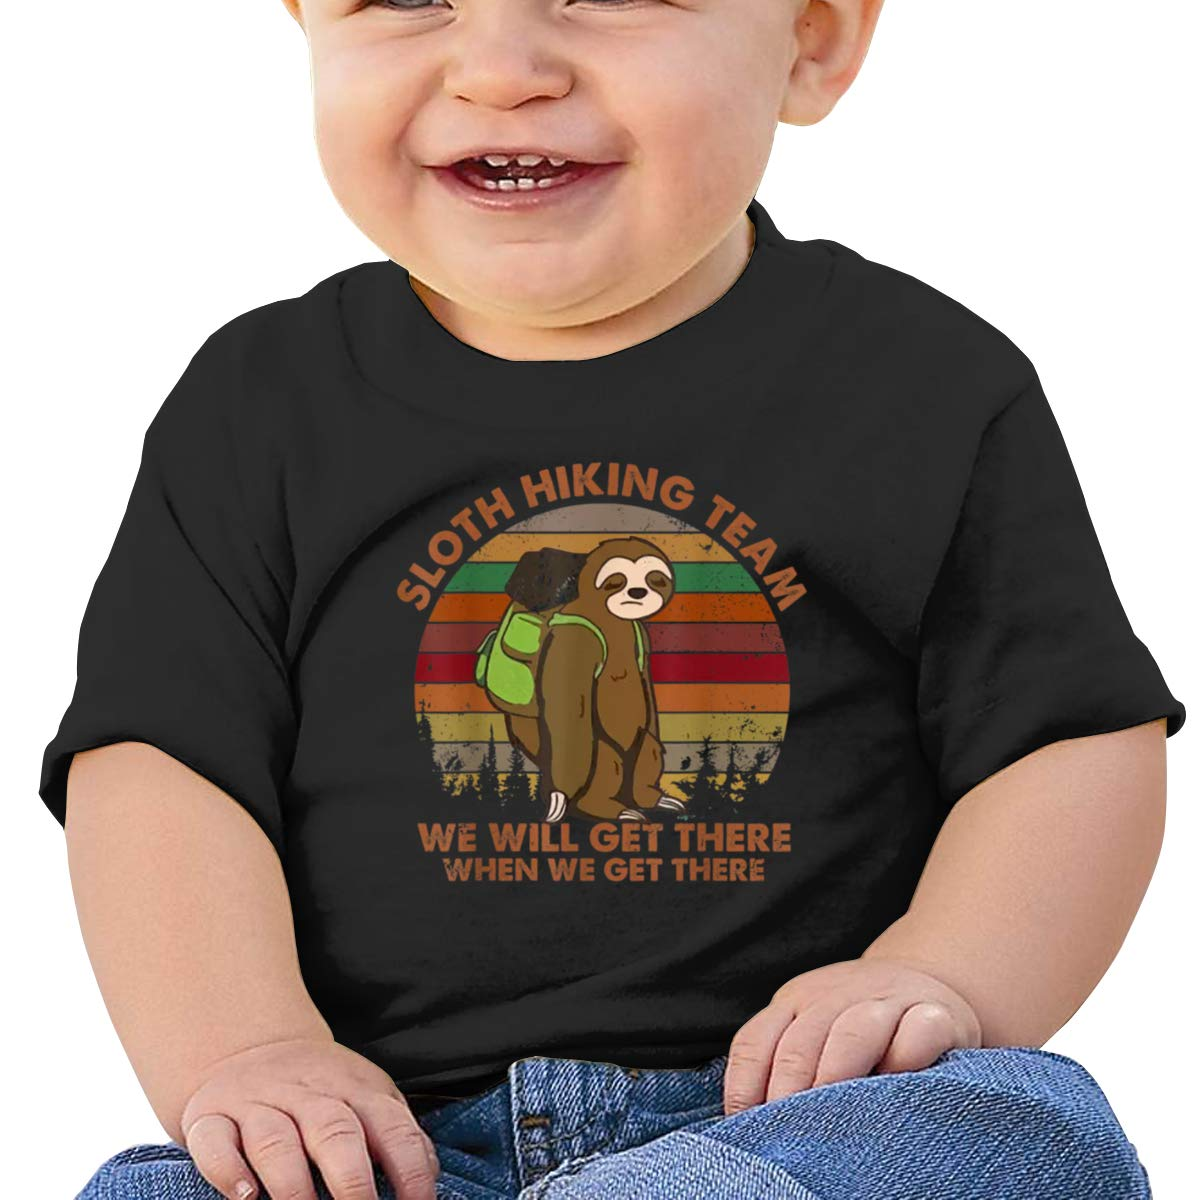 Sloth Hiking Team We Will Get There When We Get There Short-Sleeves Shirts Baby